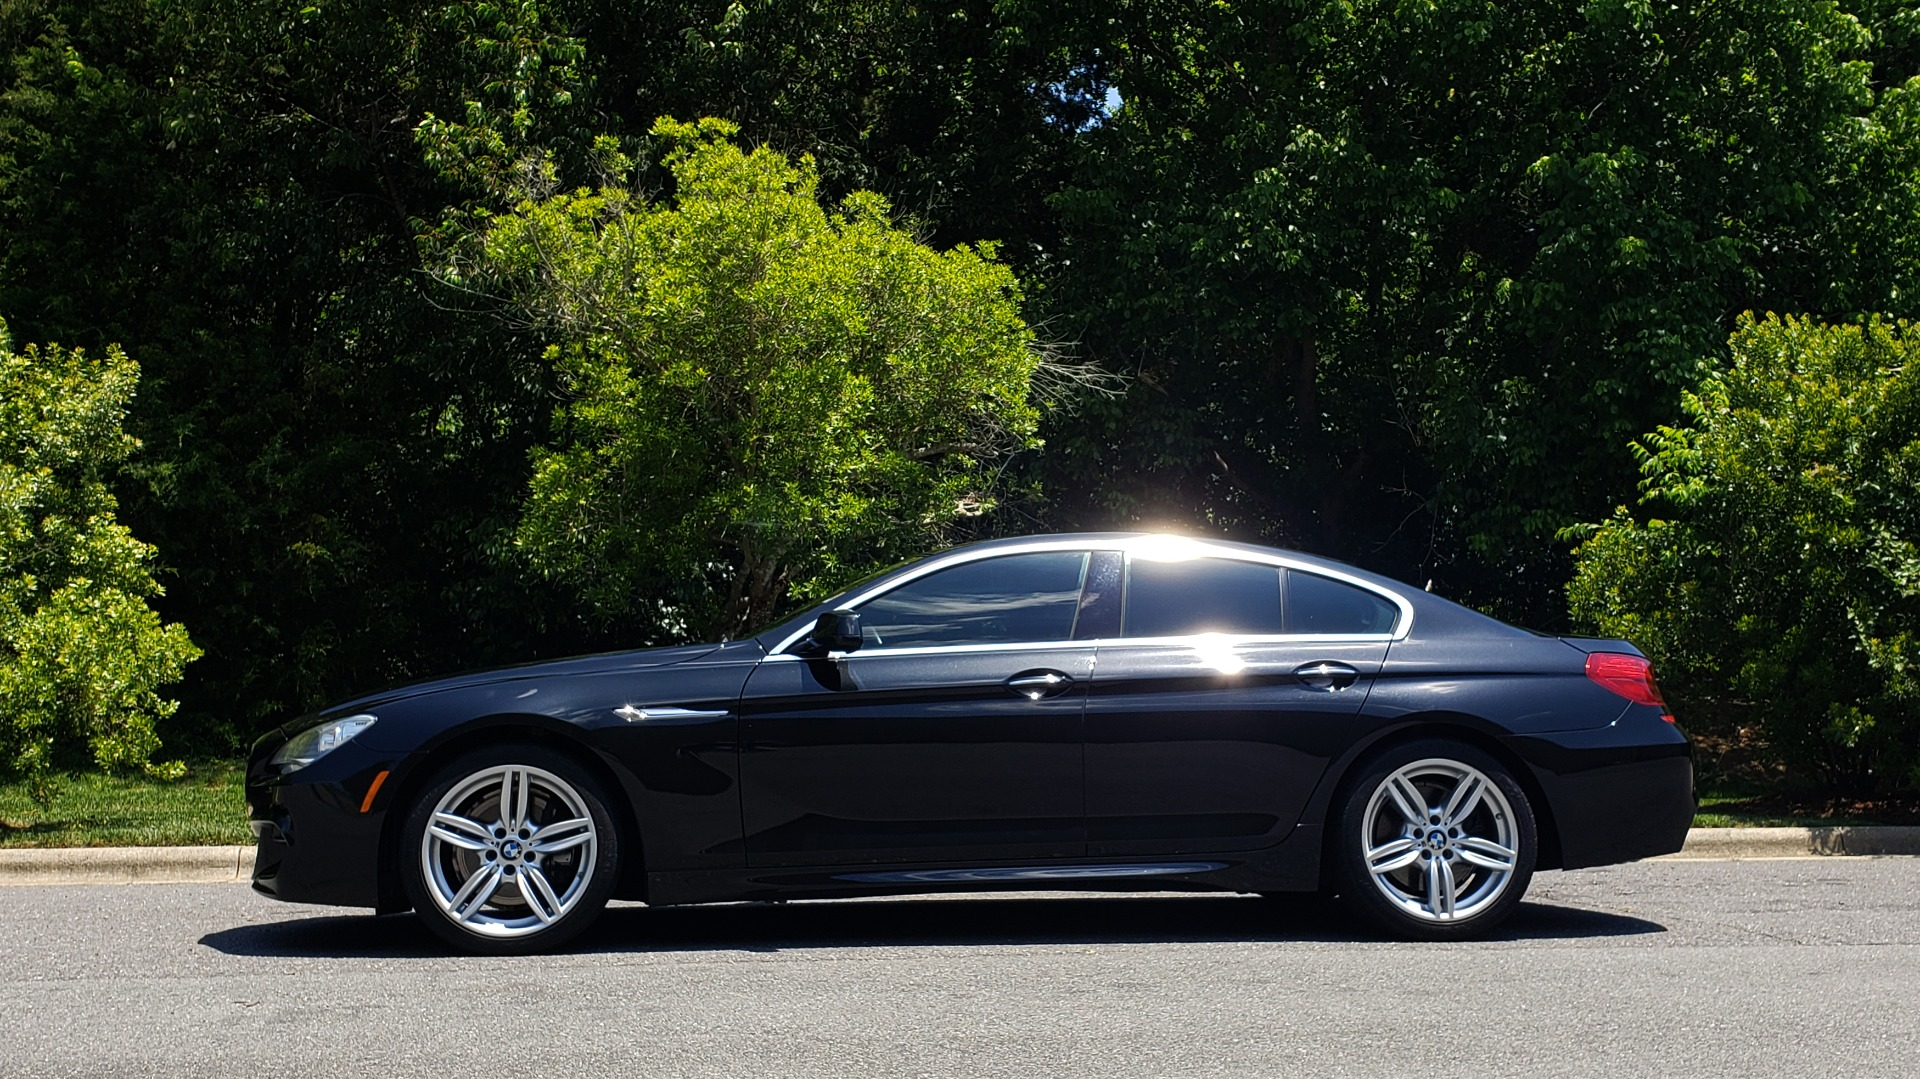 Used 2013 BMW 6 SERIES 650I GRANCOUPE / M-SPORT / LUXURY / NAV / SUNROOF / HTD STS for sale Sold at Formula Imports in Charlotte NC 28227 2